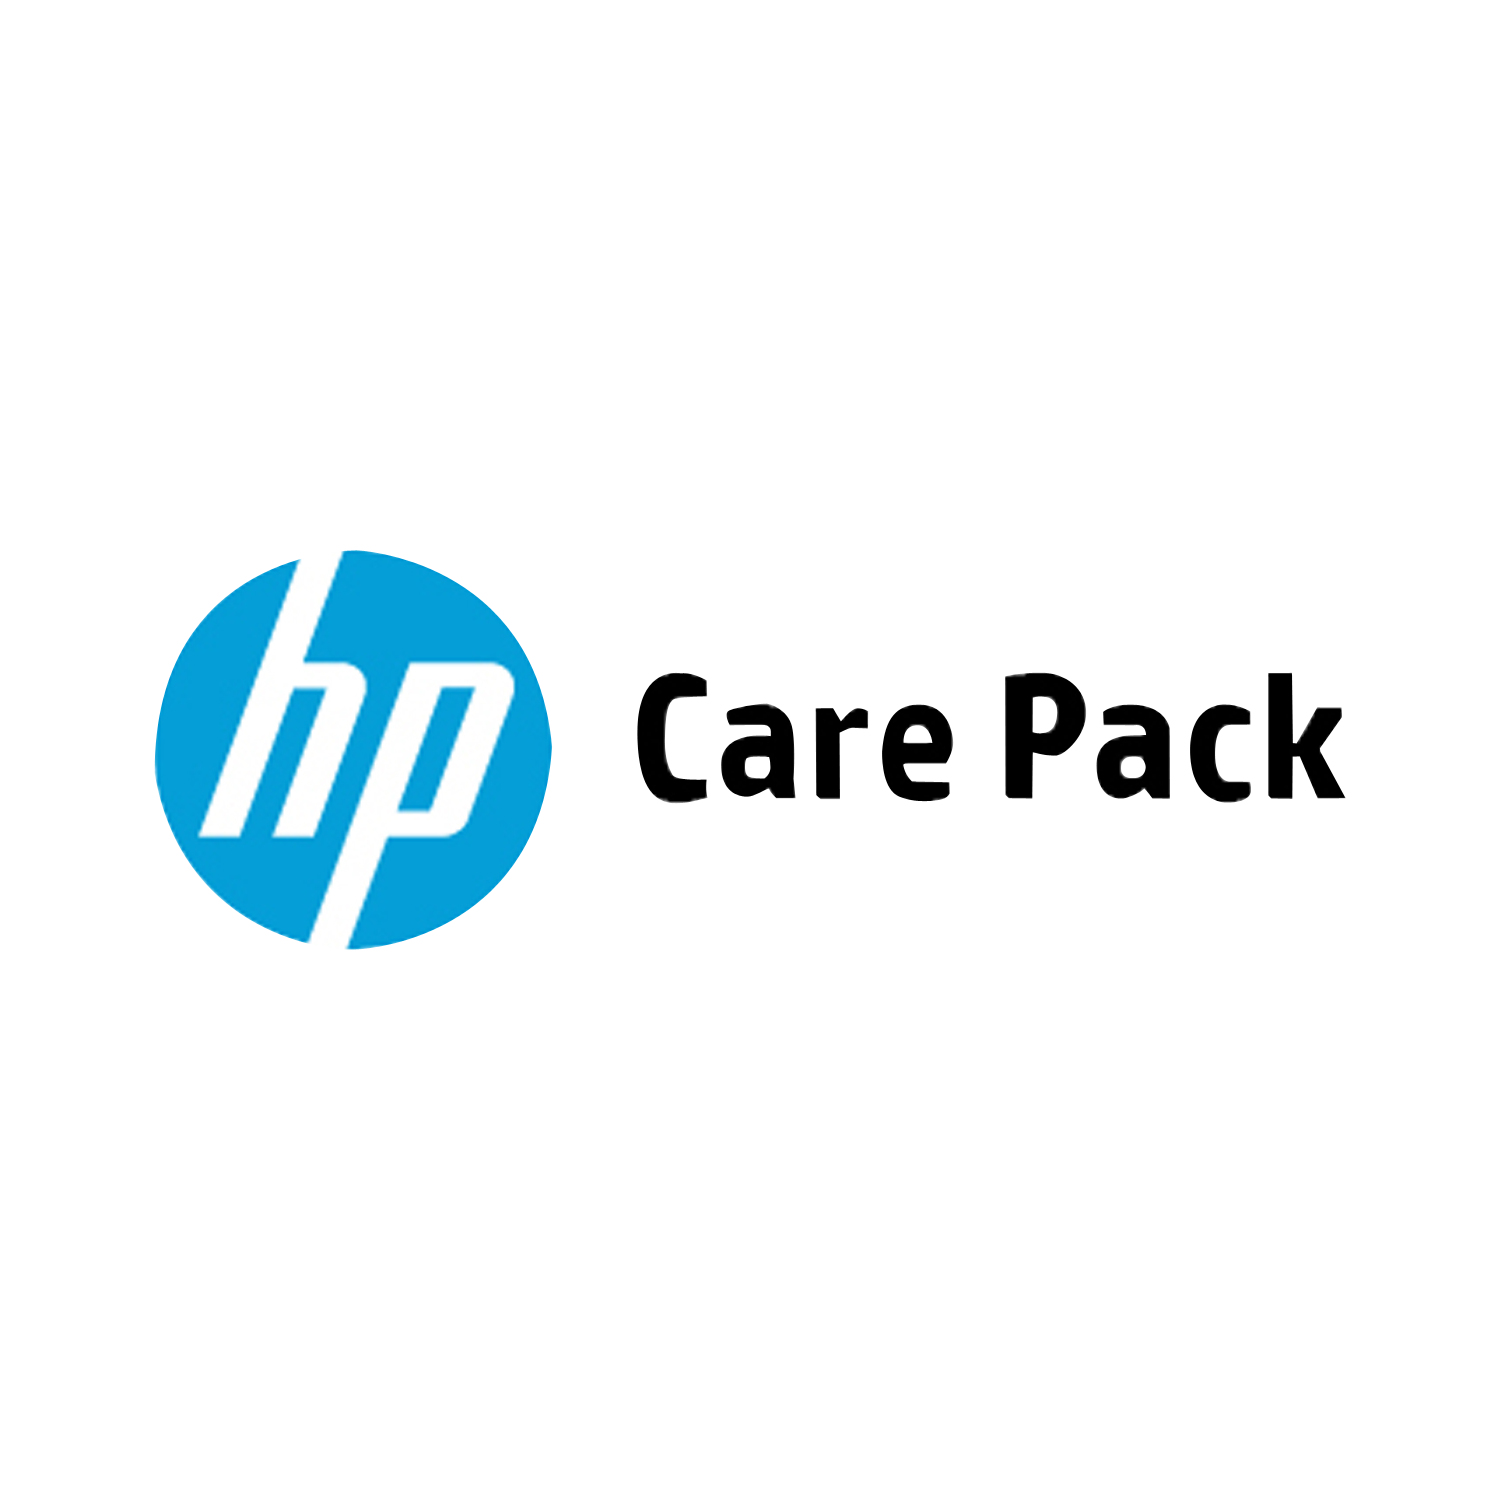 HP 3 Year ECare Pack Next Business Day For HP LaserJet M402 Series Hardware Support U8TM2E - C2000